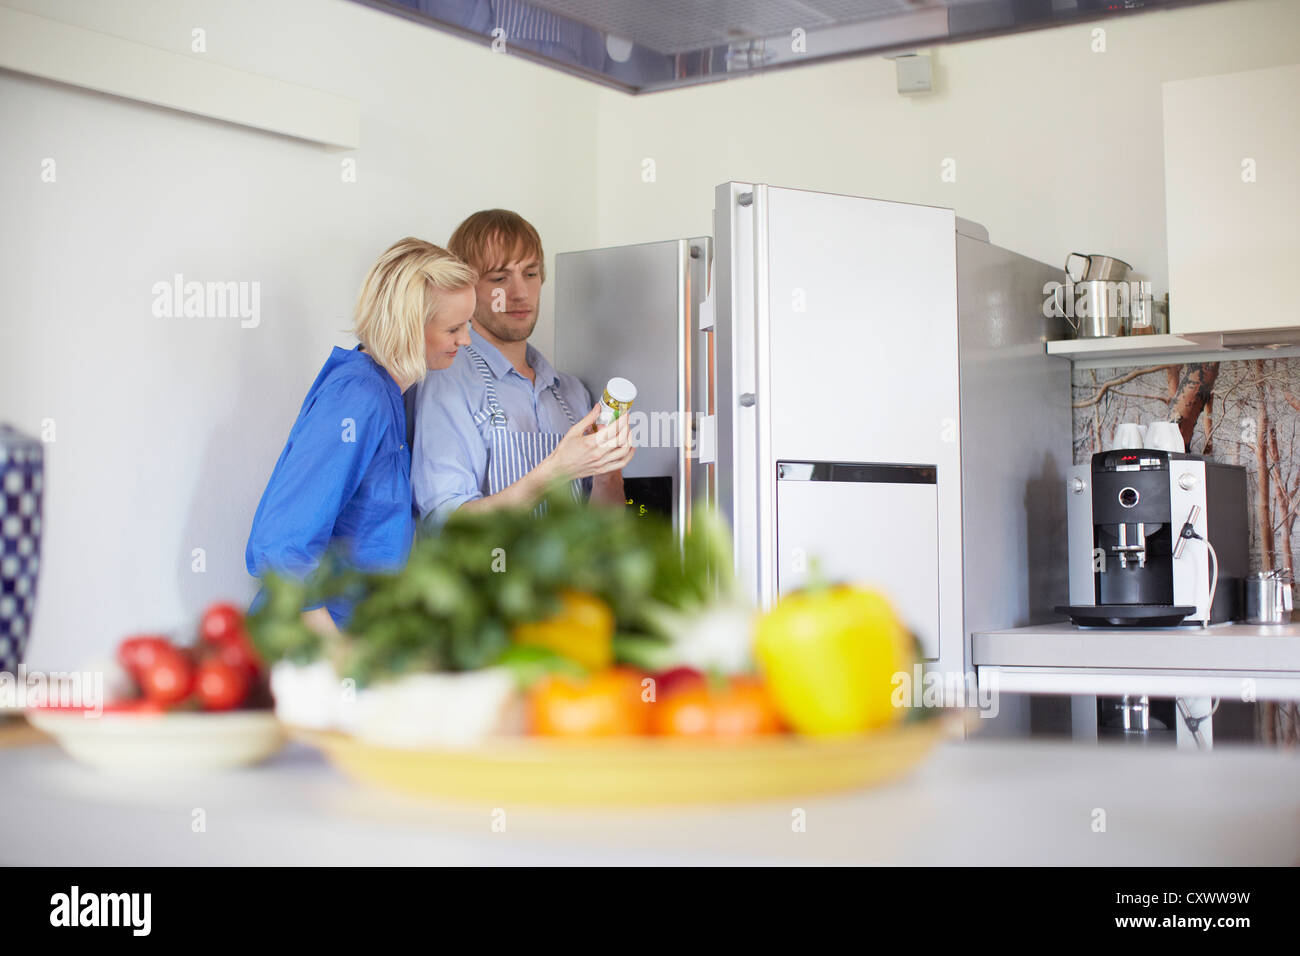 Couple cooking together in kitchen - Stock Image